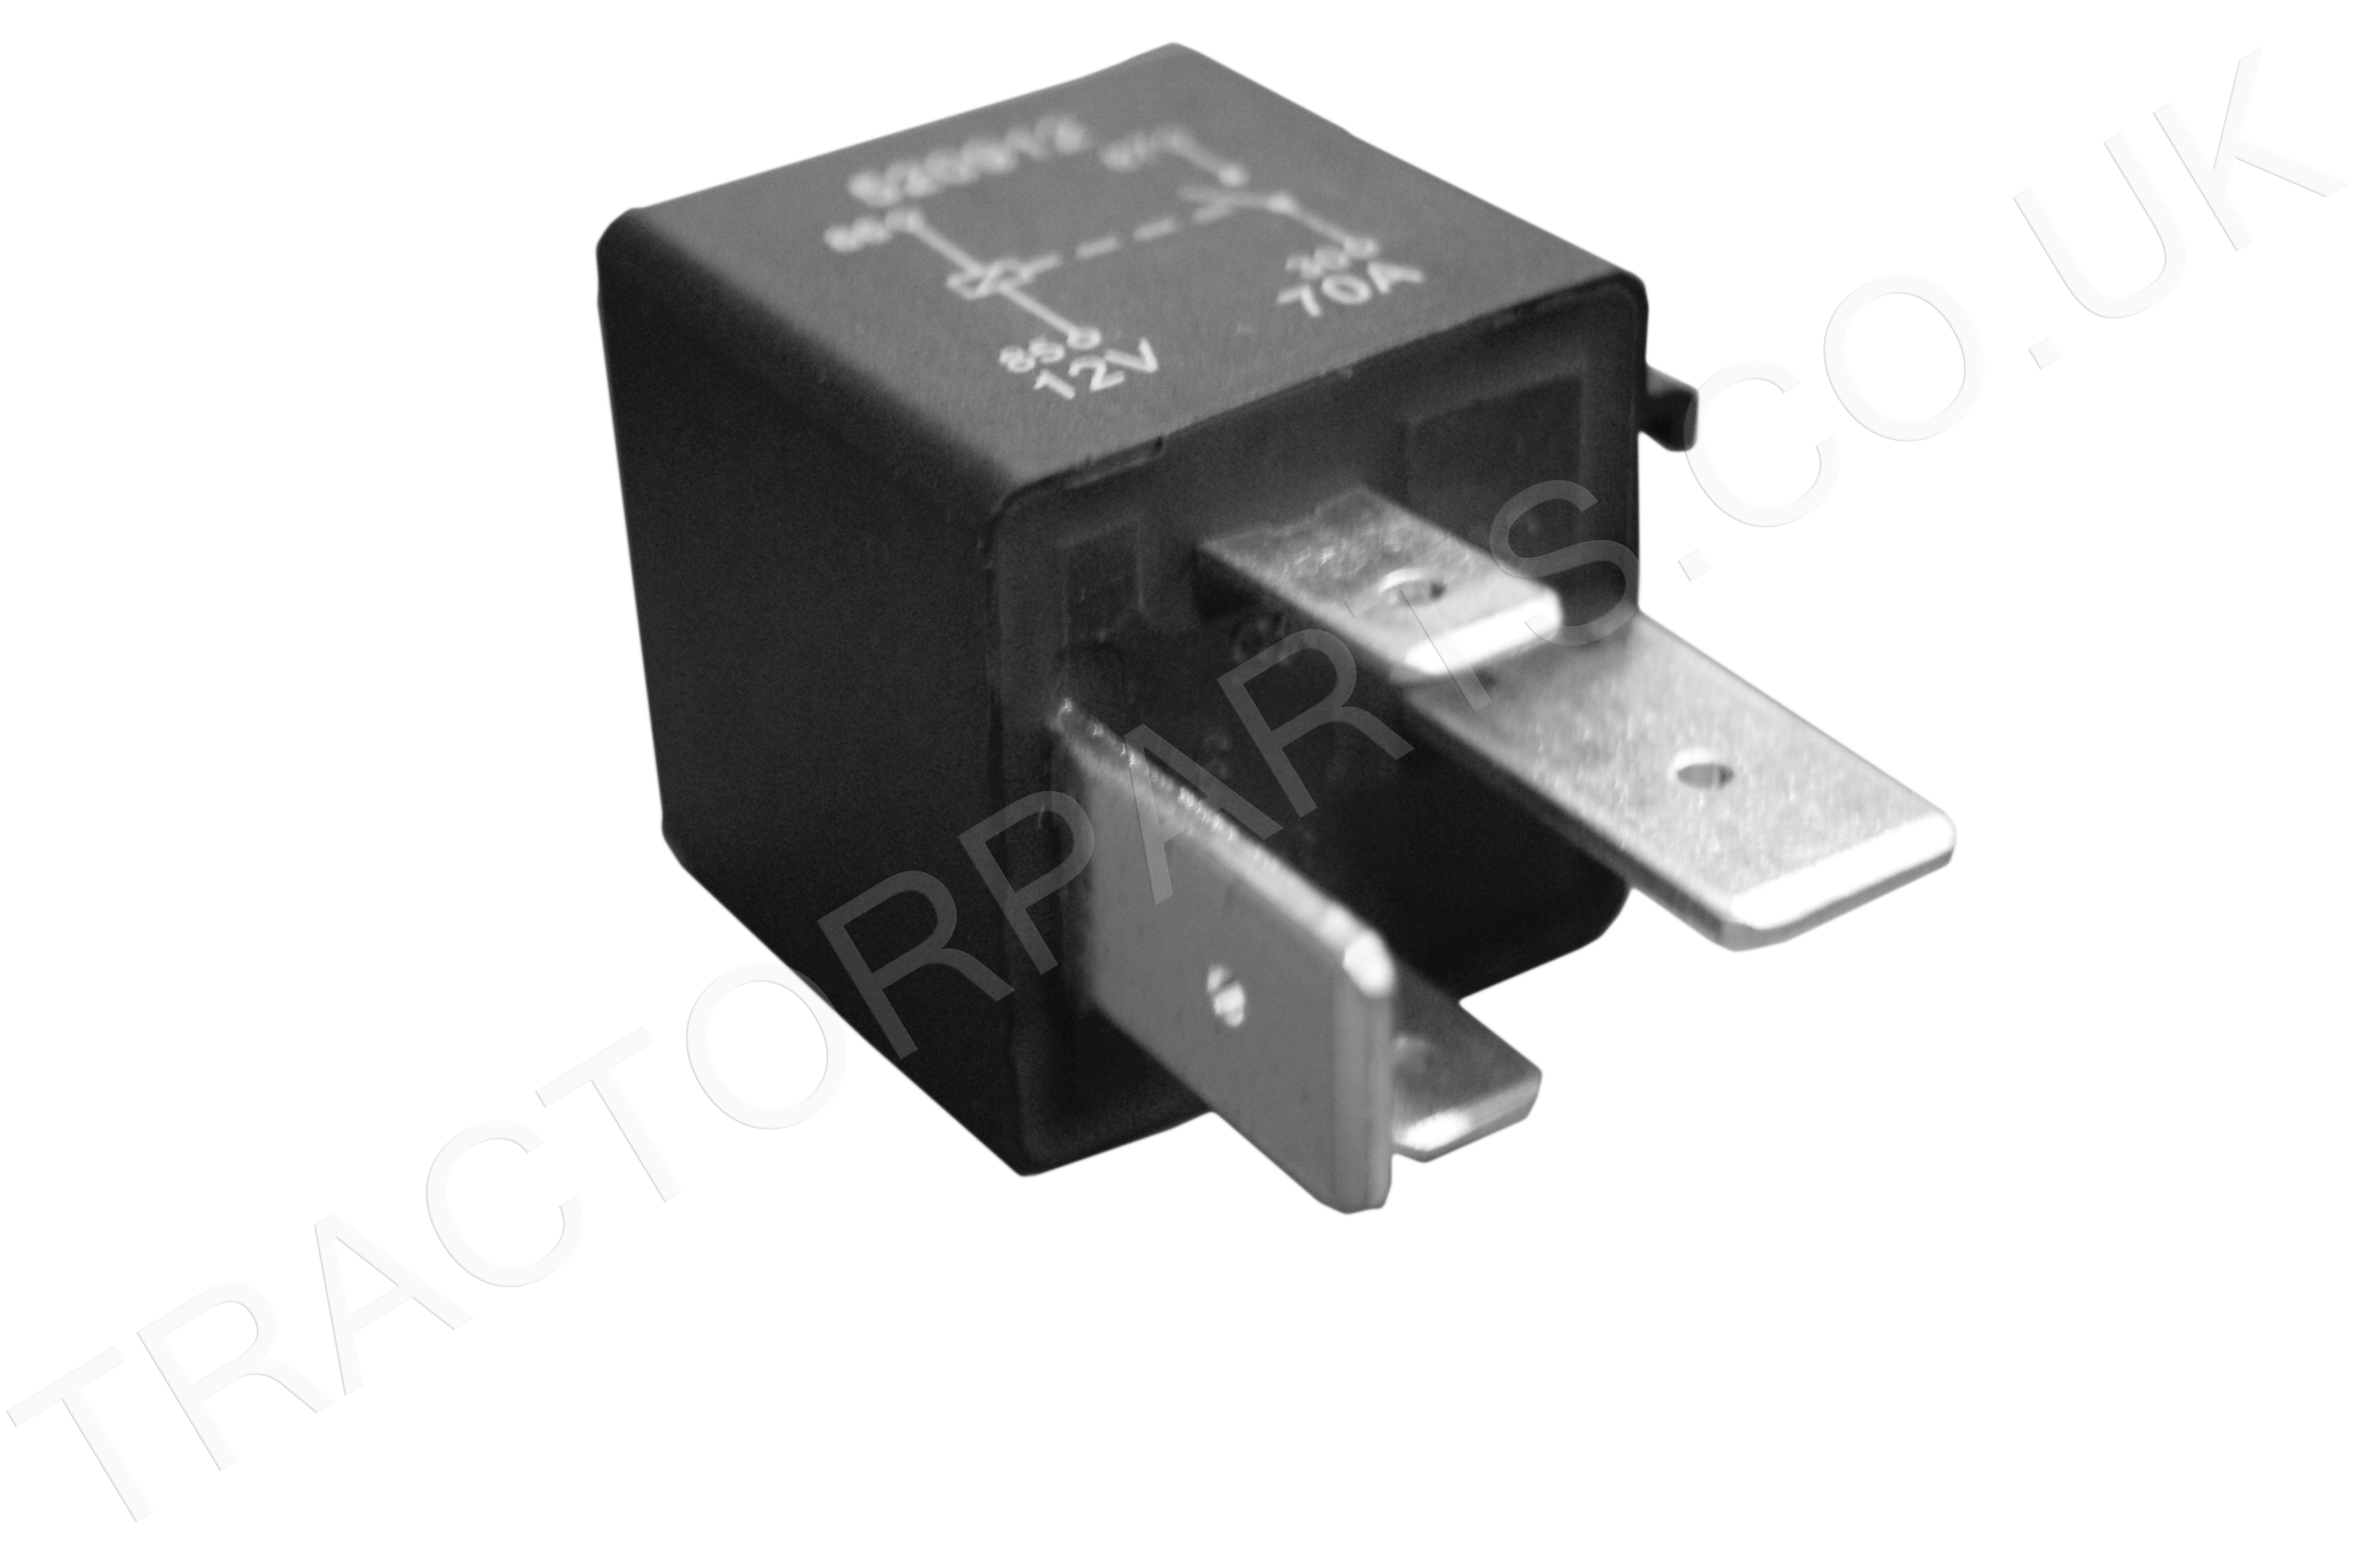 Case MX Starter Relay Switch 12V 70 AMP 4 Pin 84172275 1987452C1 - 4 Prong Relay Part Number